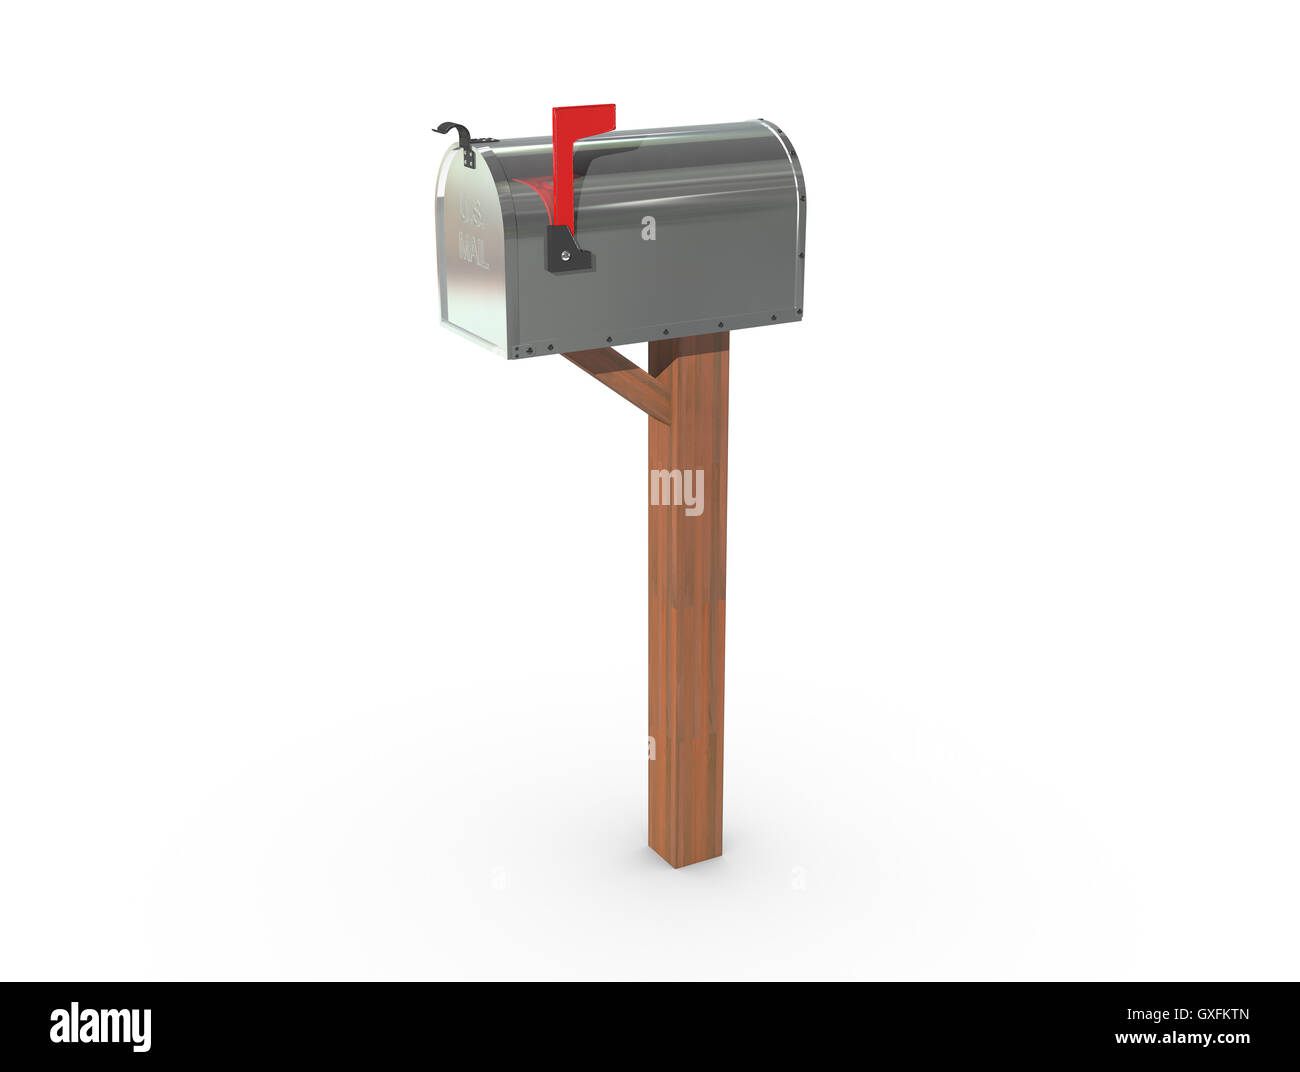 A 3D rendering of a chrome and empty US Mailbox closed with clean